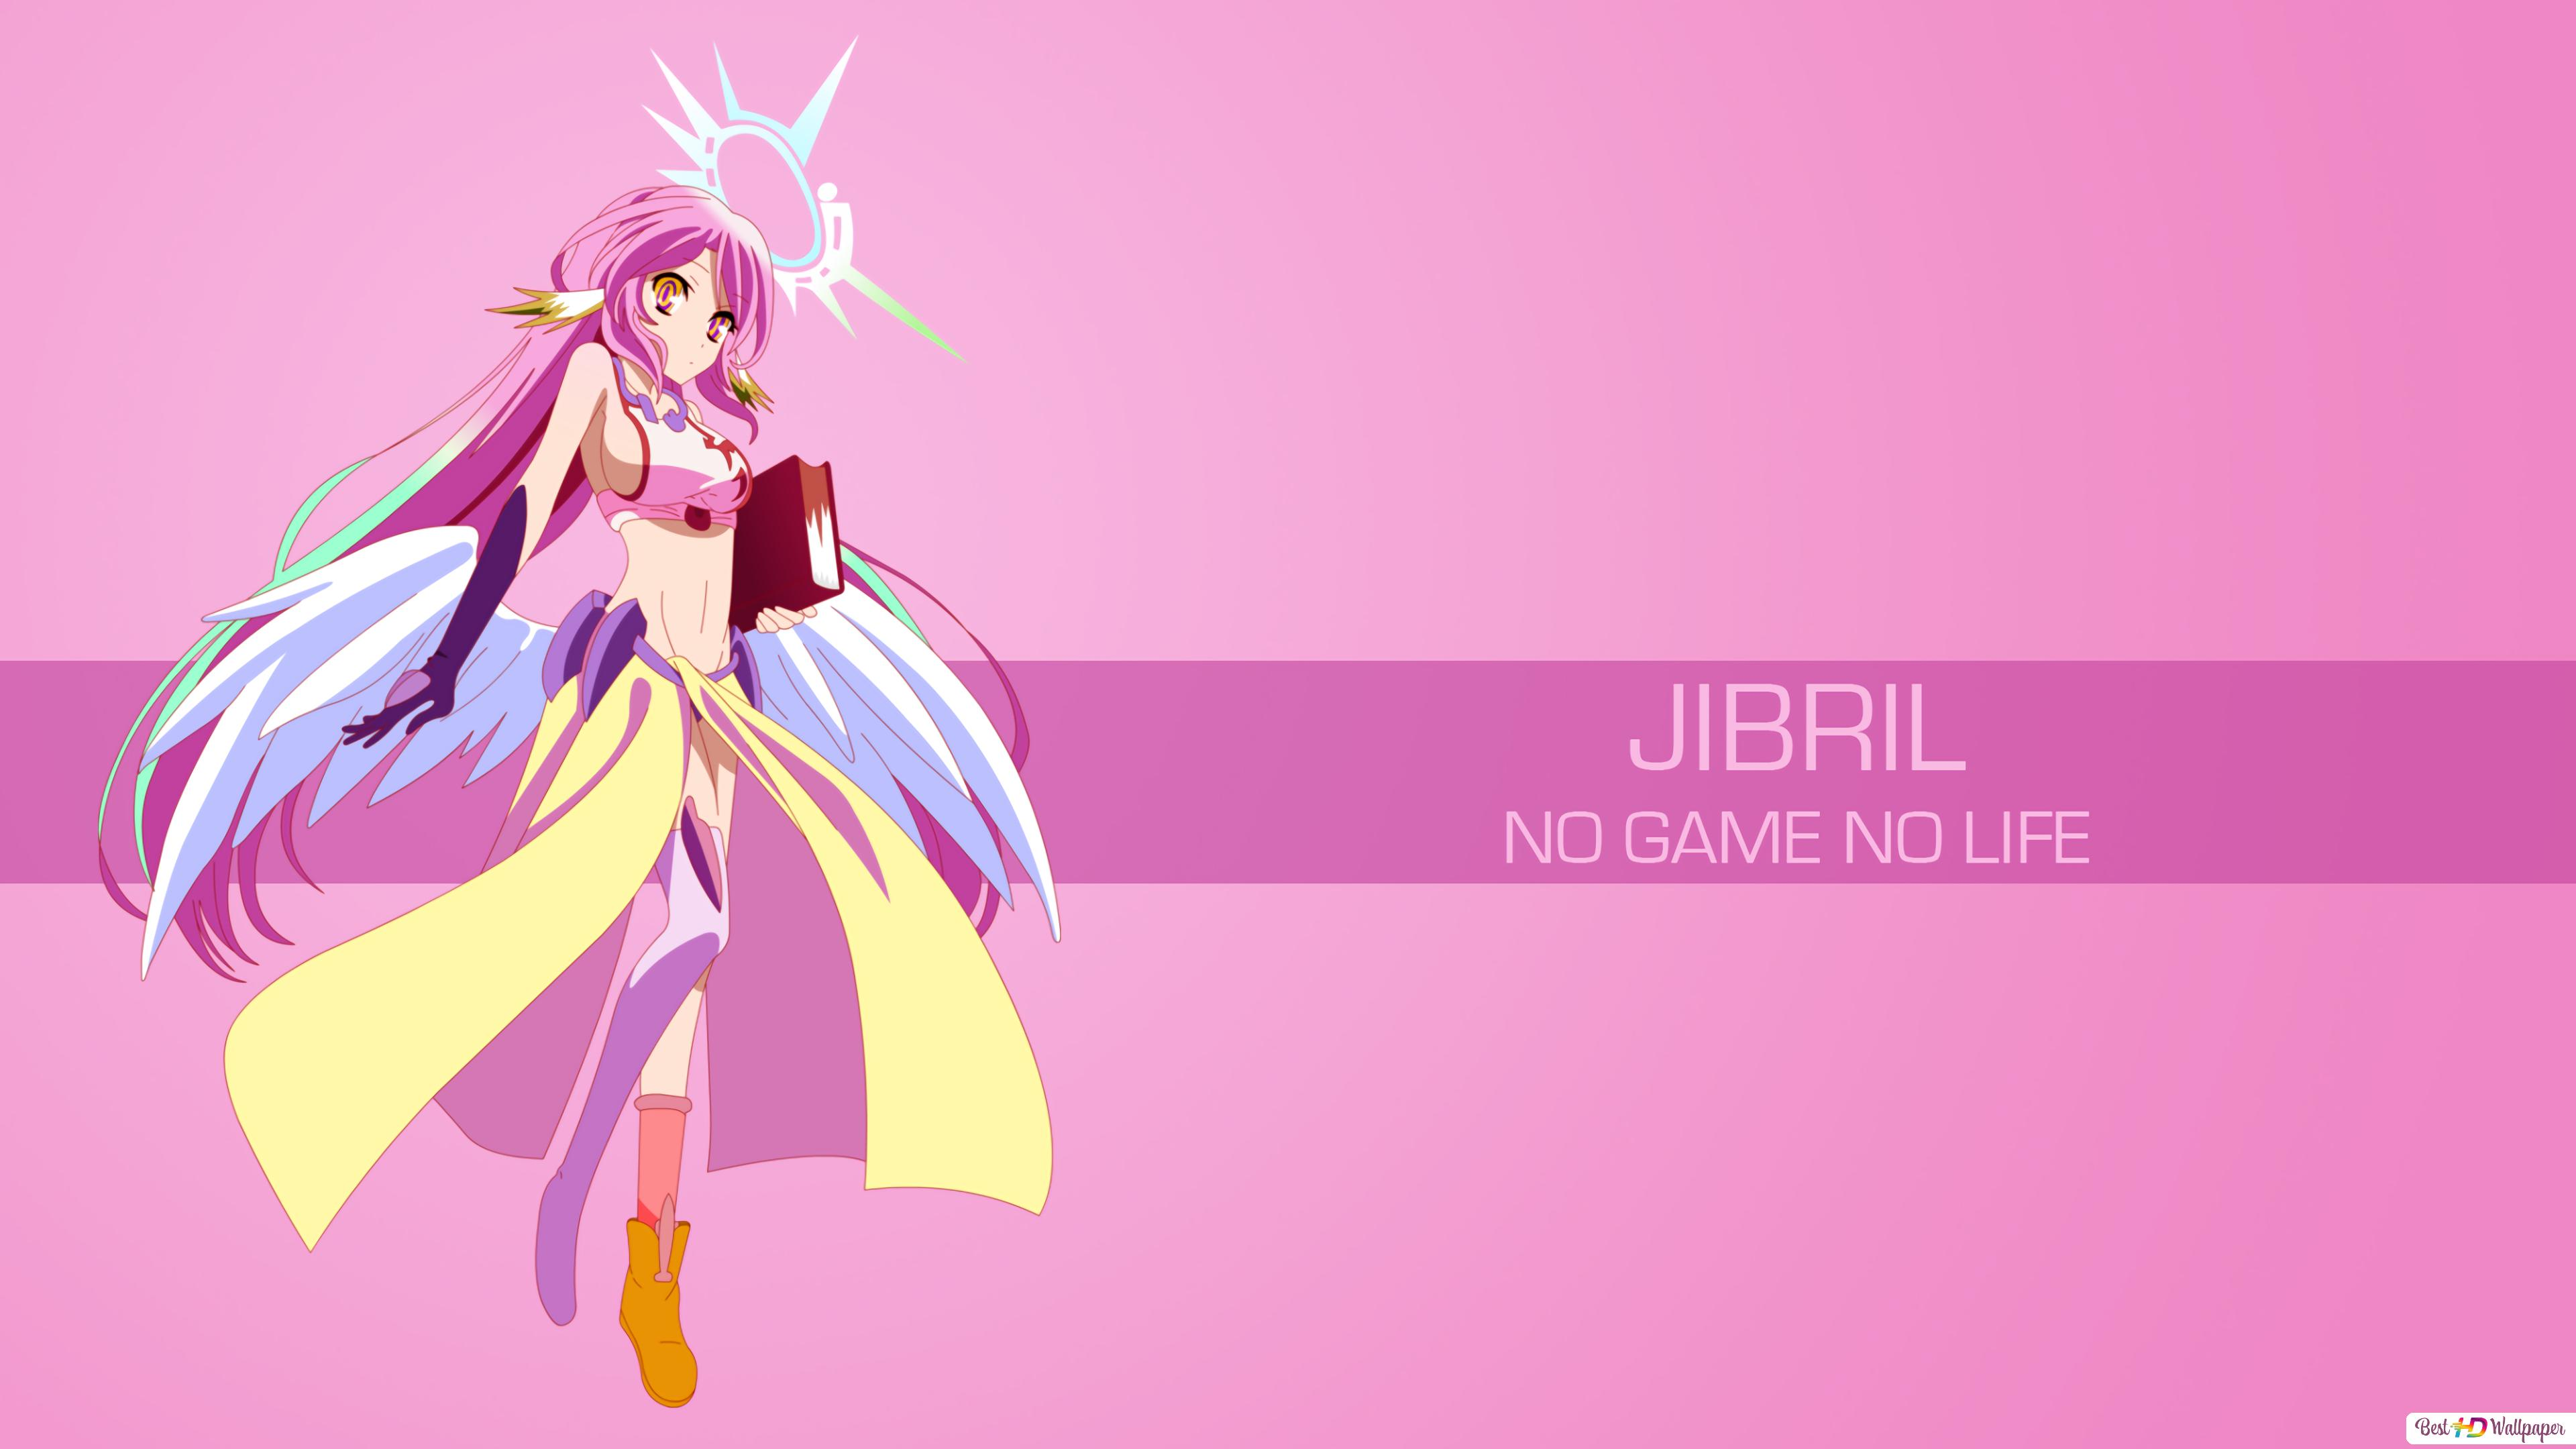 Jibril No Game No Life Hd Wallpaper Download